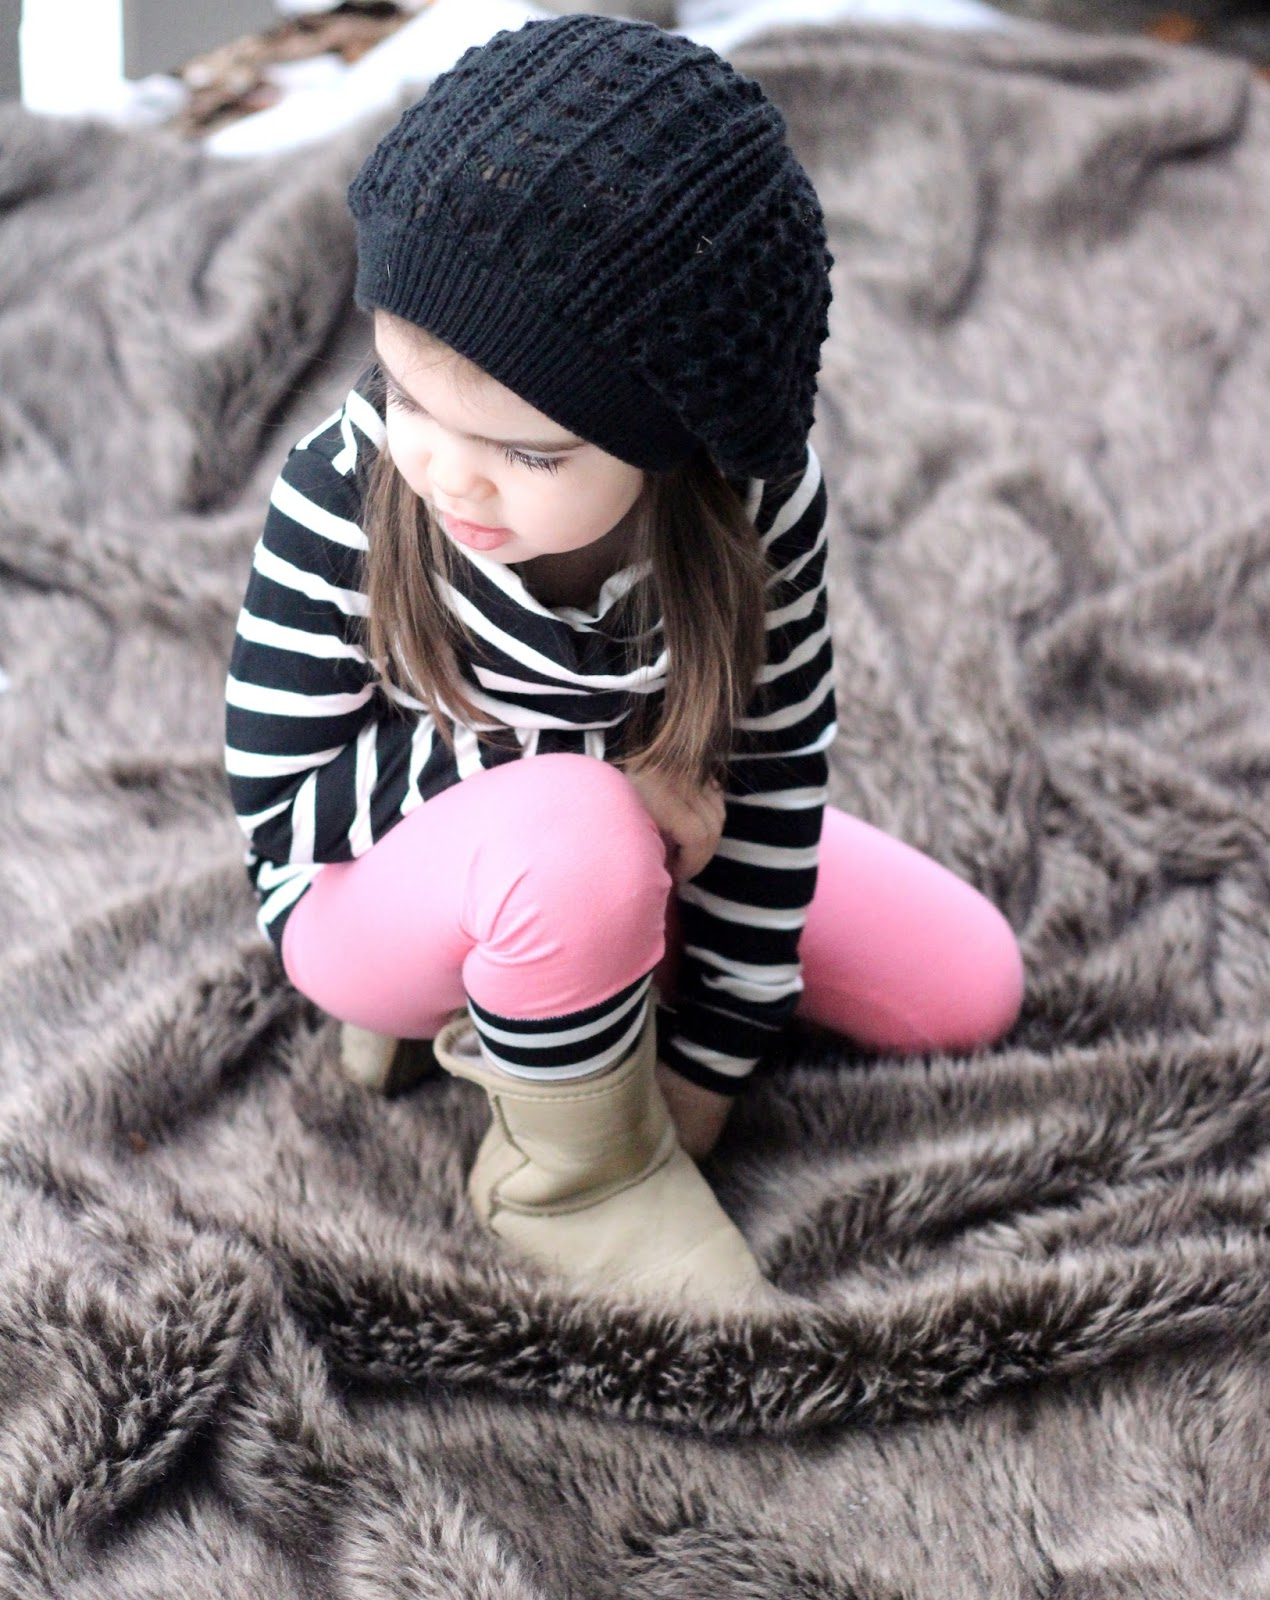 Cool clothes for kids, from Cute Little Babes.